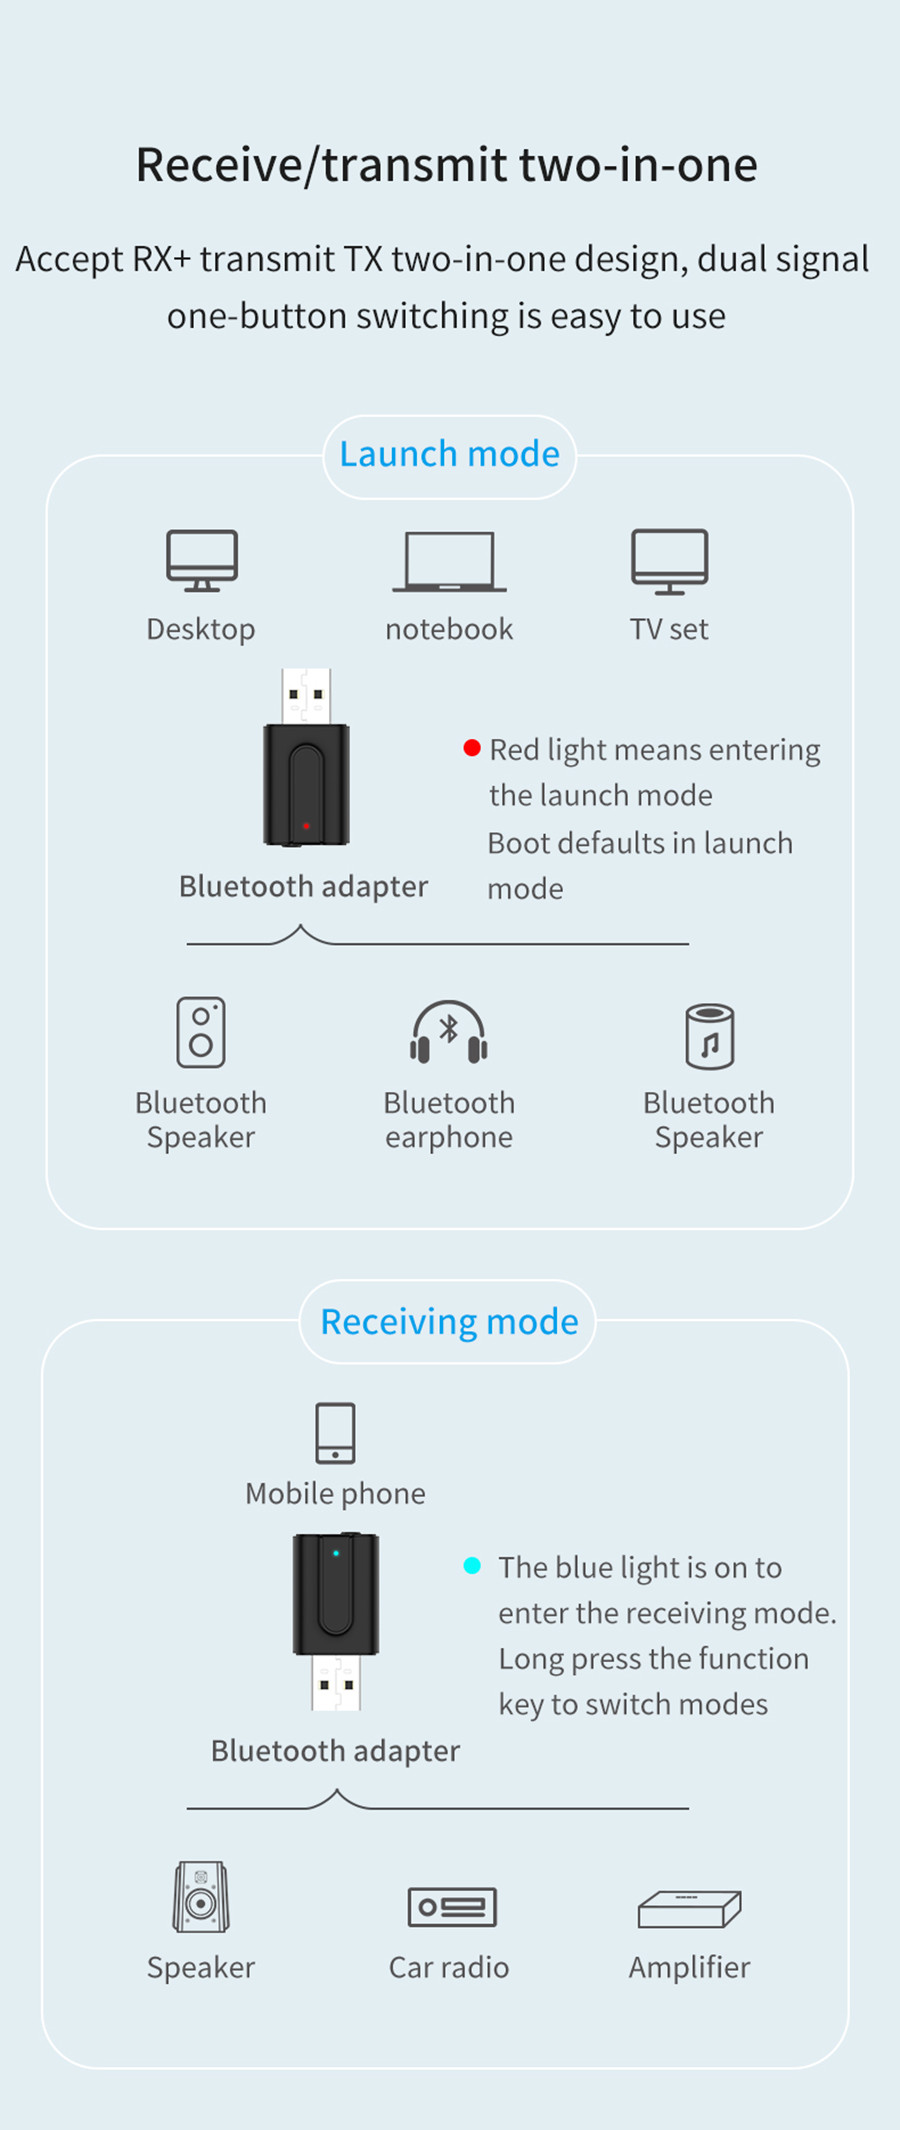 VIKEFON Bluetooth 5 0 Audio Receiver Transmitter 2In1 RCA 3 5mm AUX Jack  Hifi Stereo USB Wireless Adapter For TV PC Car Kit MP3-in Wireless Adapter